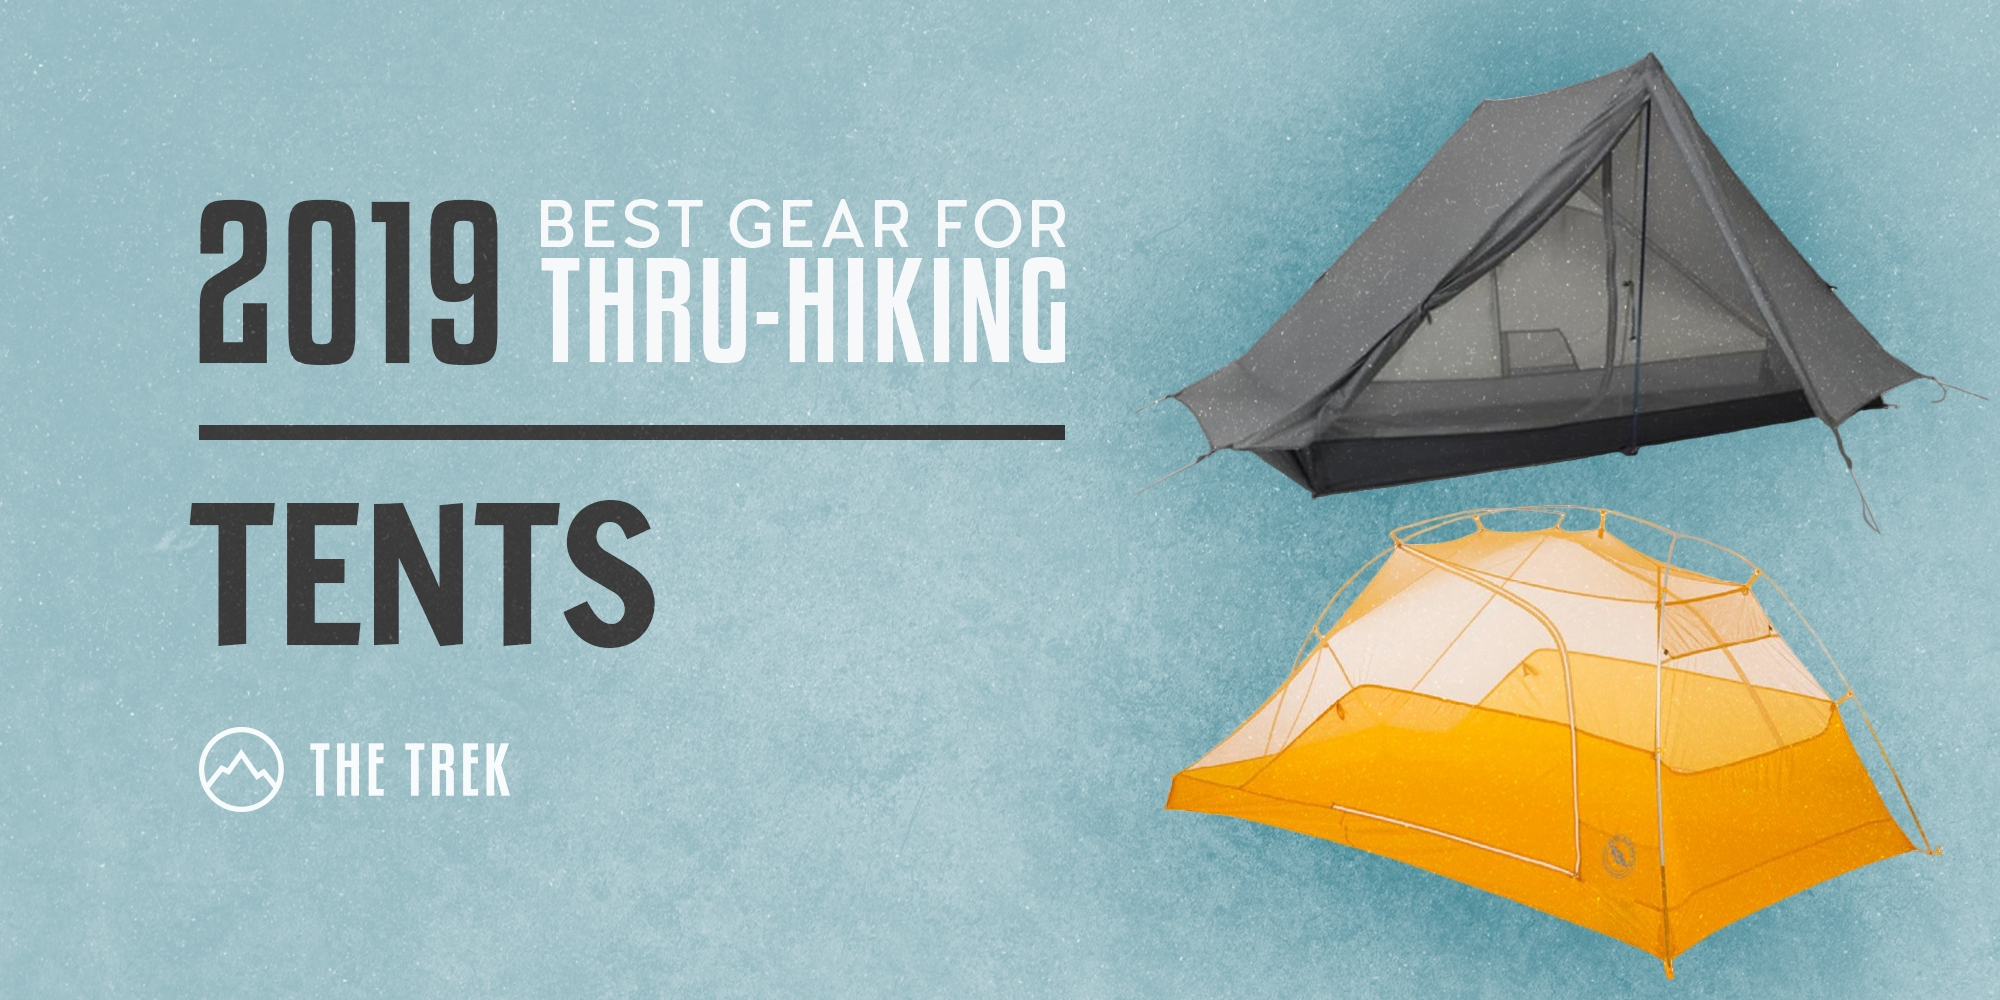 The Best Tents for Thru-Hiking of 2019 - The Trek